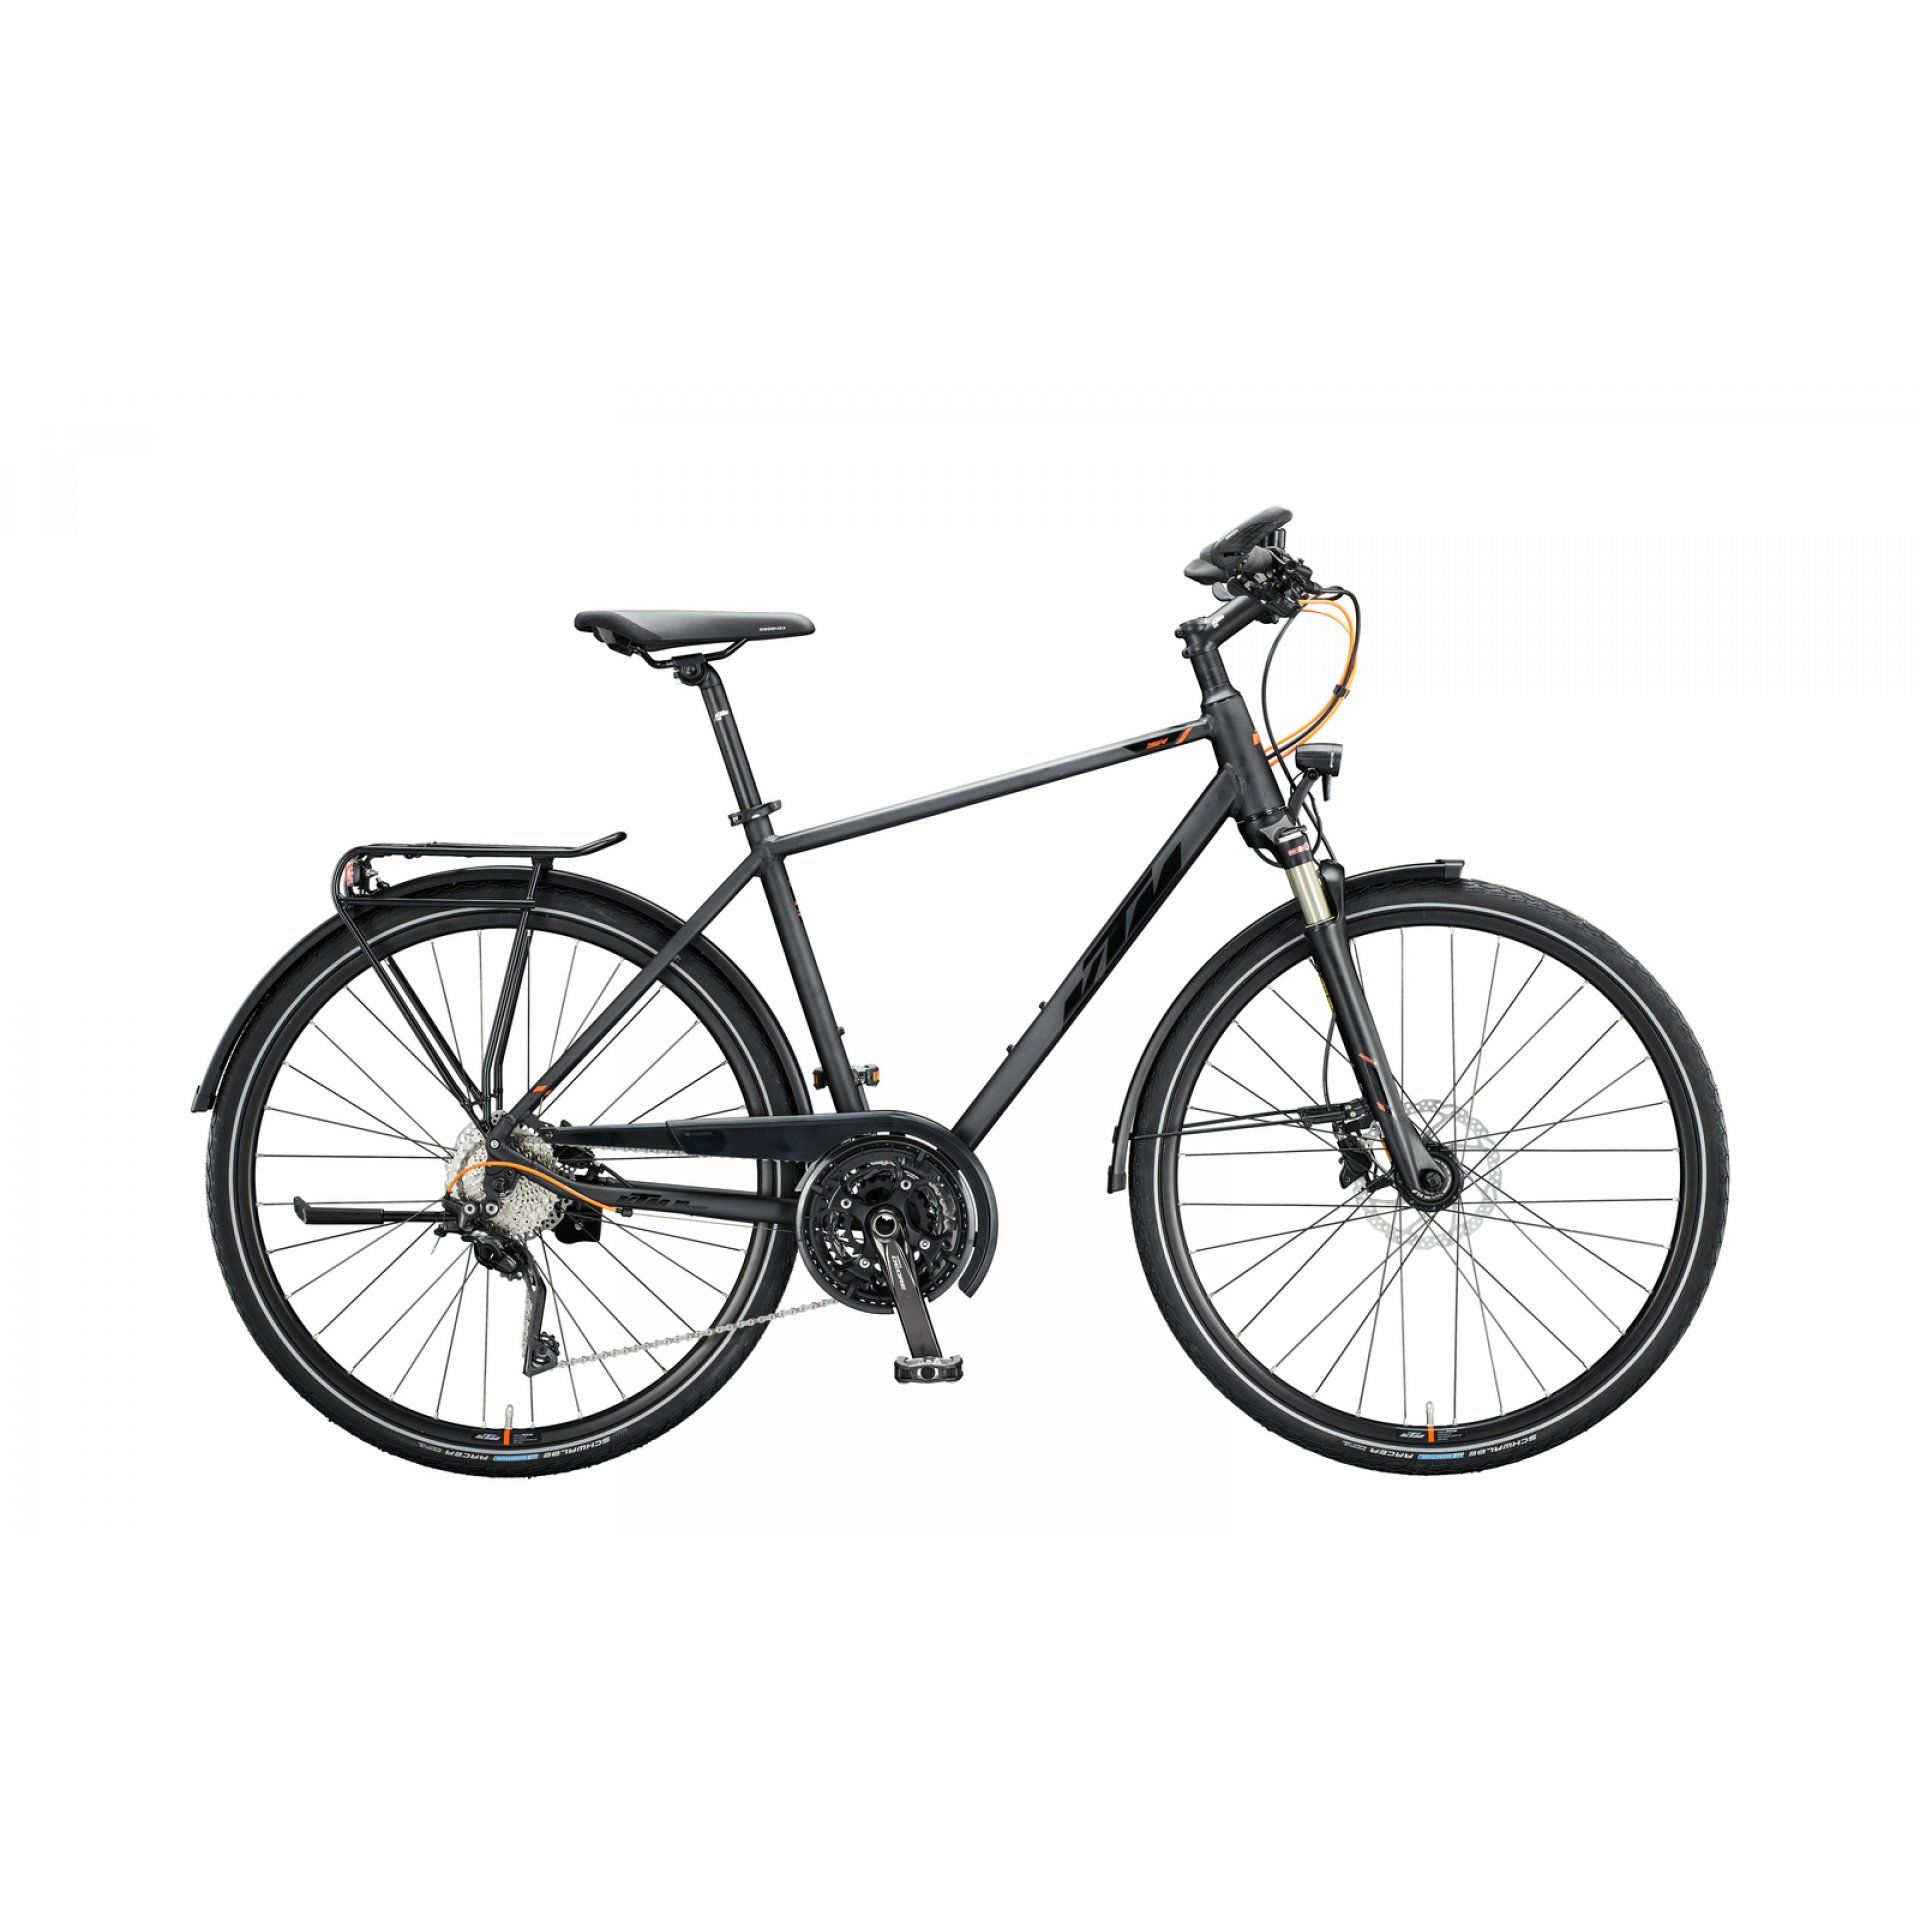 ROWER KTM LIFE 1964 H BLACK MATT|GREY 202121